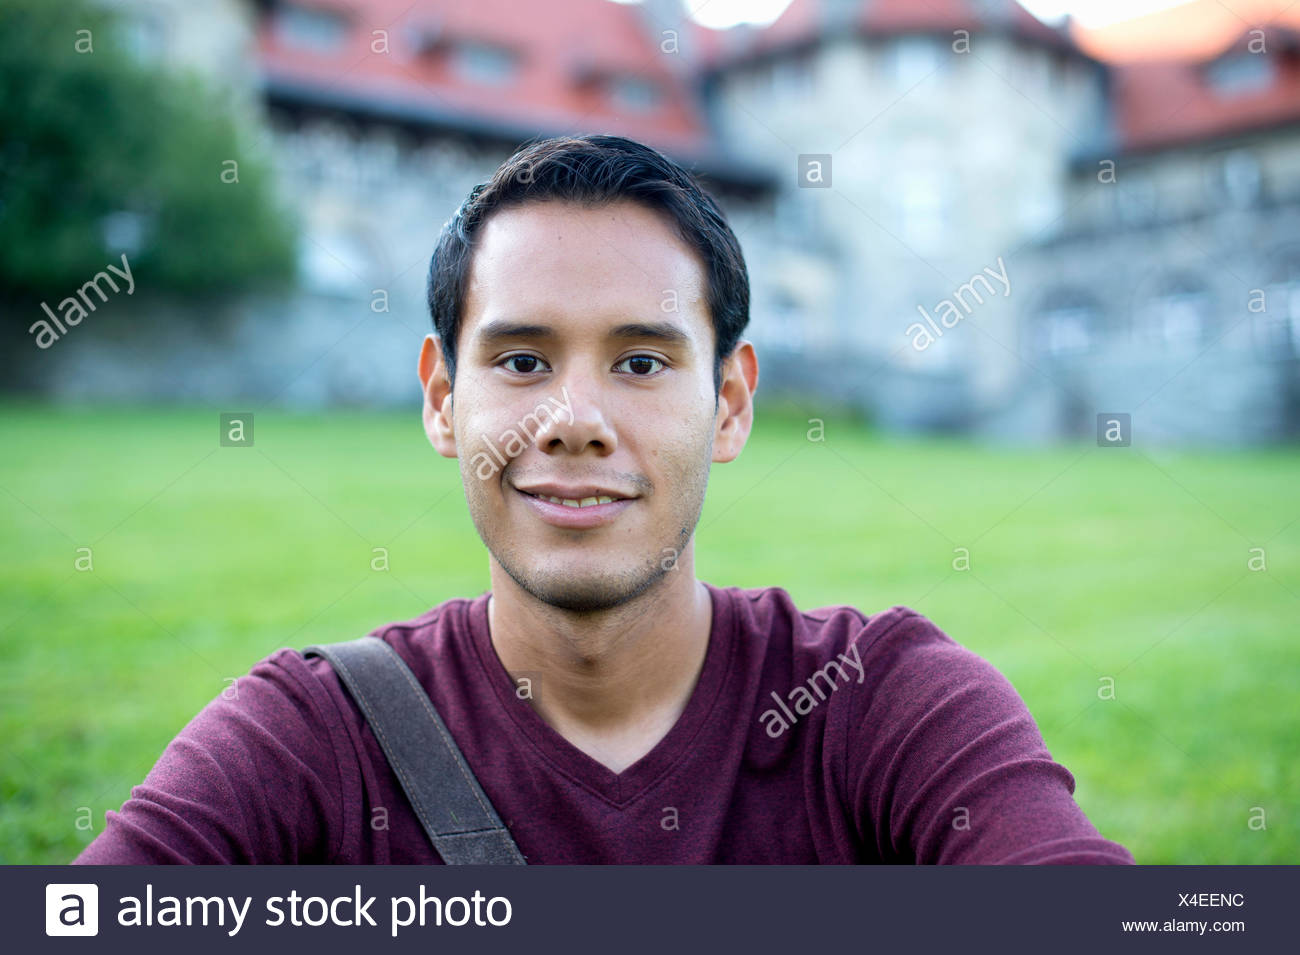 Head and shoulders portrait of a young man - Stock Image